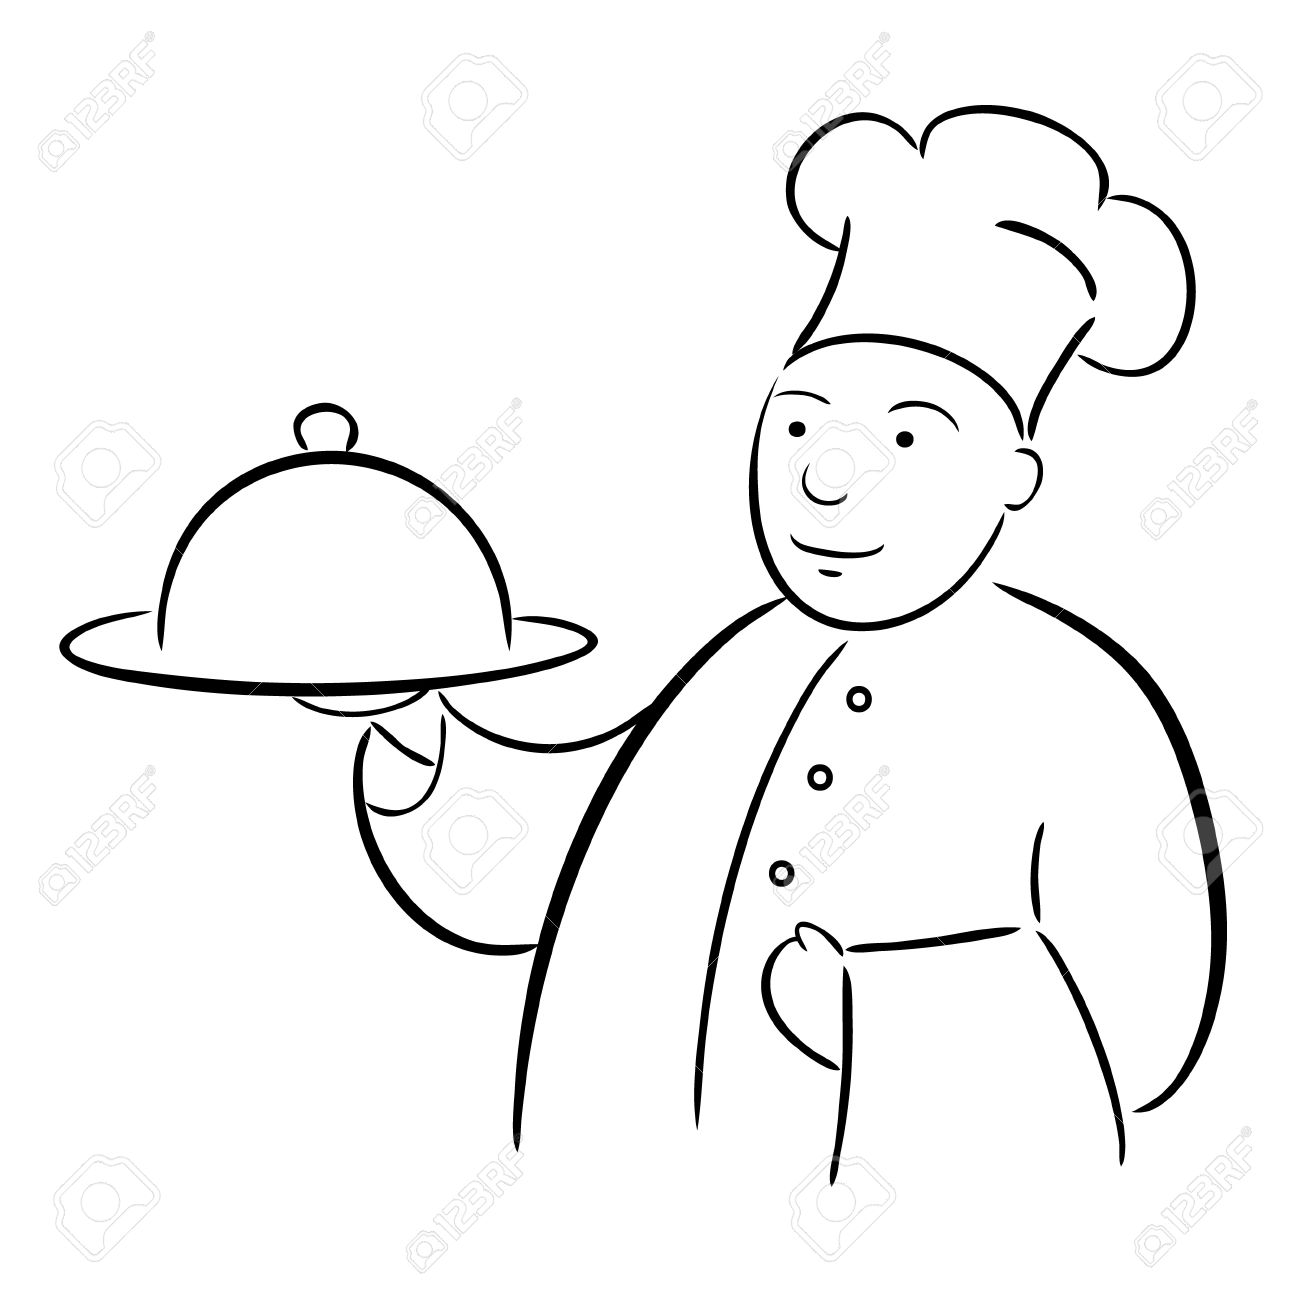 1300x1300 Chef Cook With Tray Calligraphy Drawing Royalty Free Cliparts